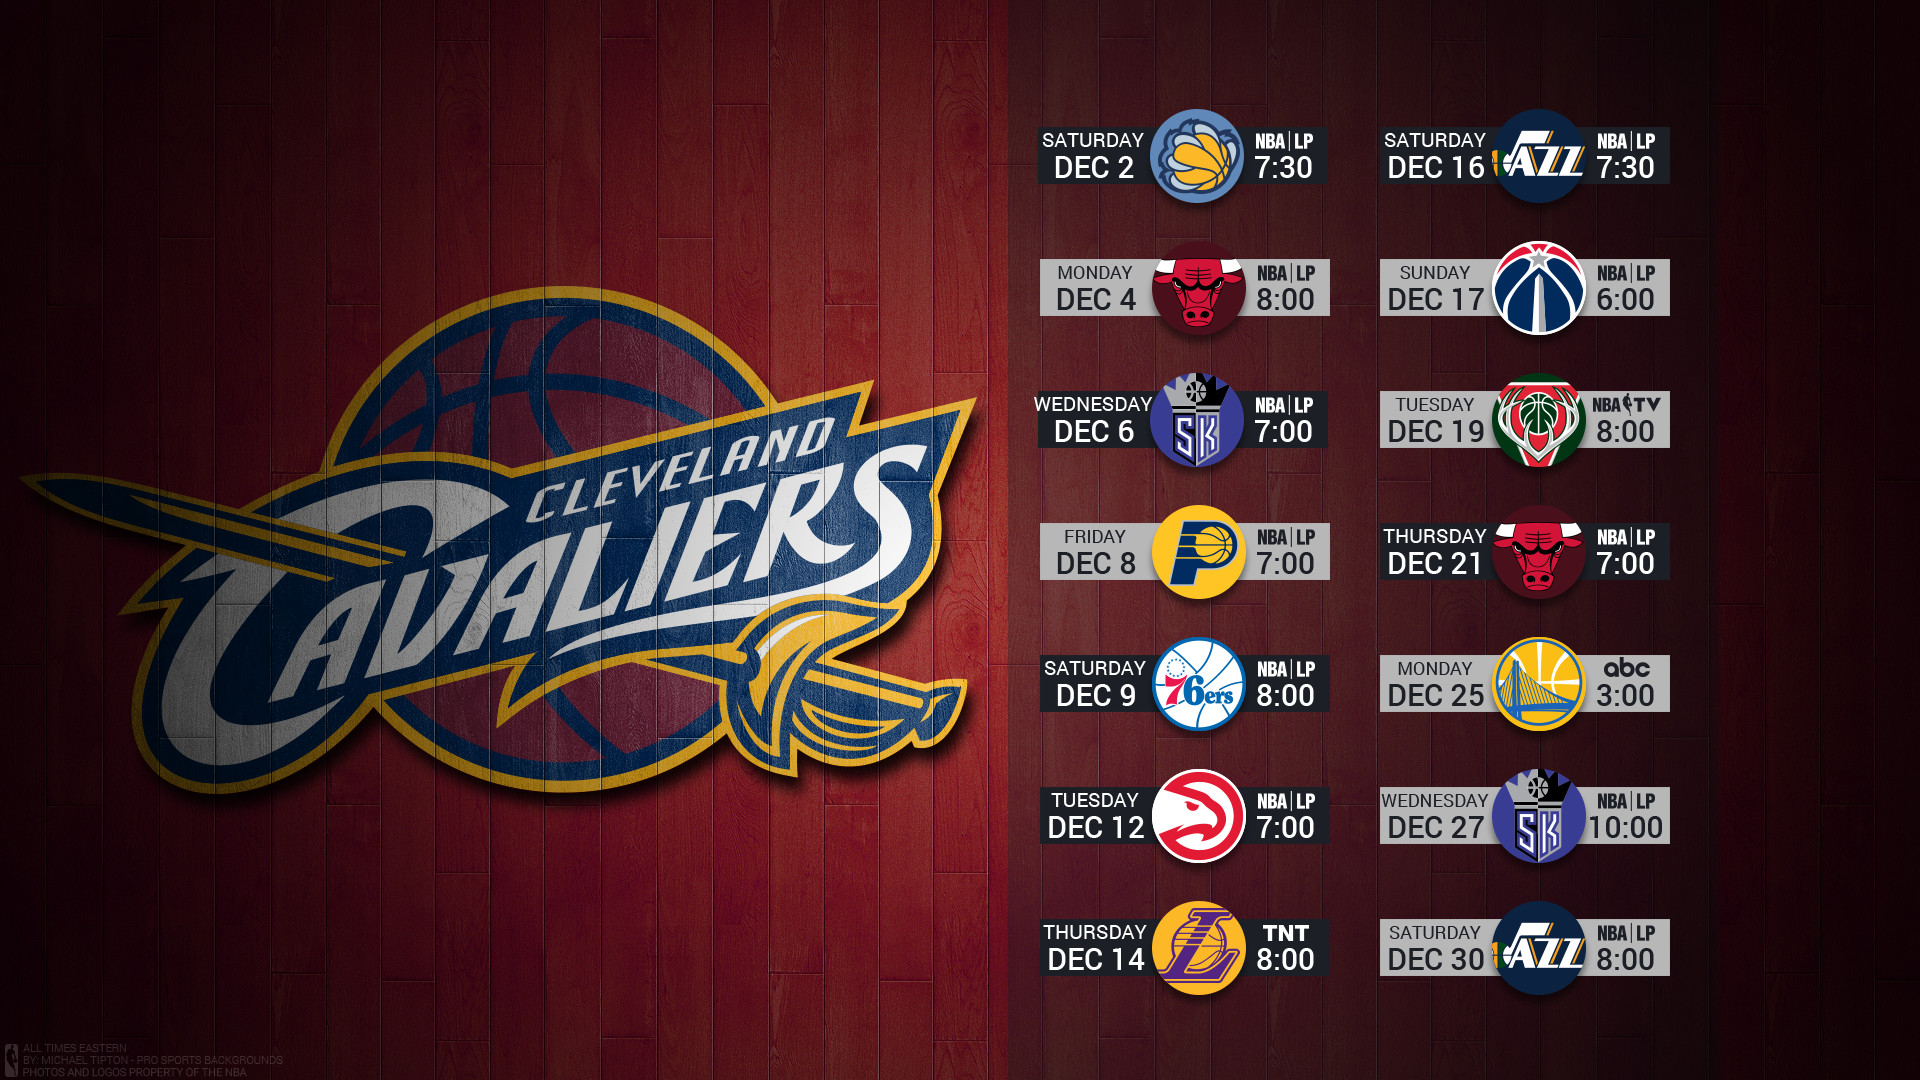 1920x1080 Cleveland Cavaliers cavs 2017 schedule NBA BASKETBALL logo wallpaper free pc desktop computer